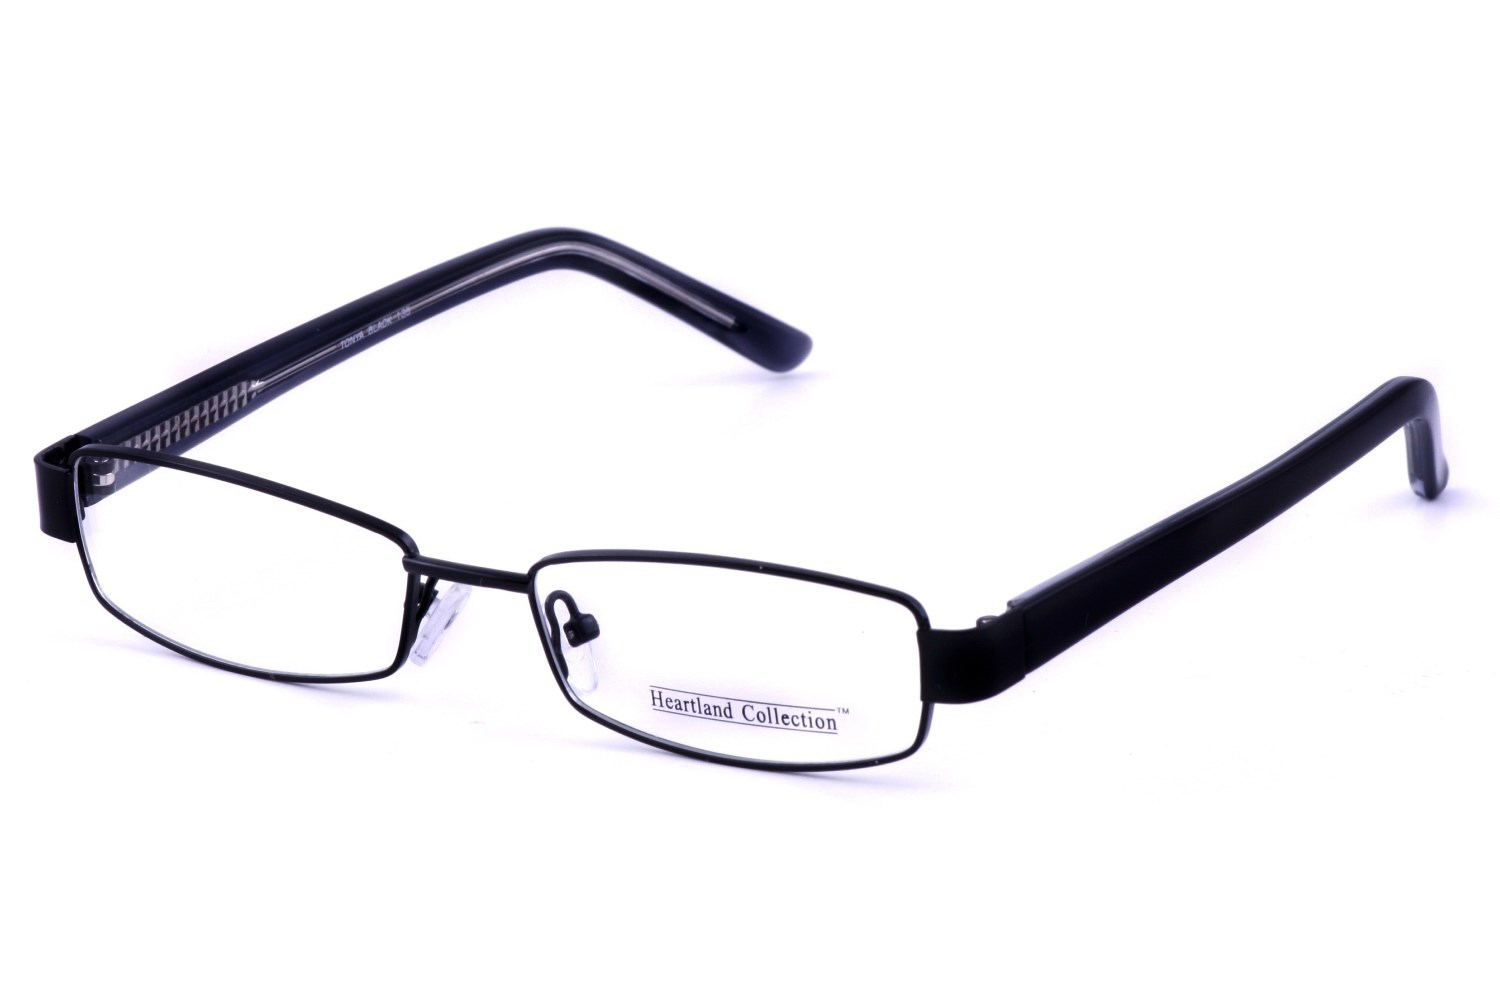 Heartland Tonya Prescription Eyeglasses Frames